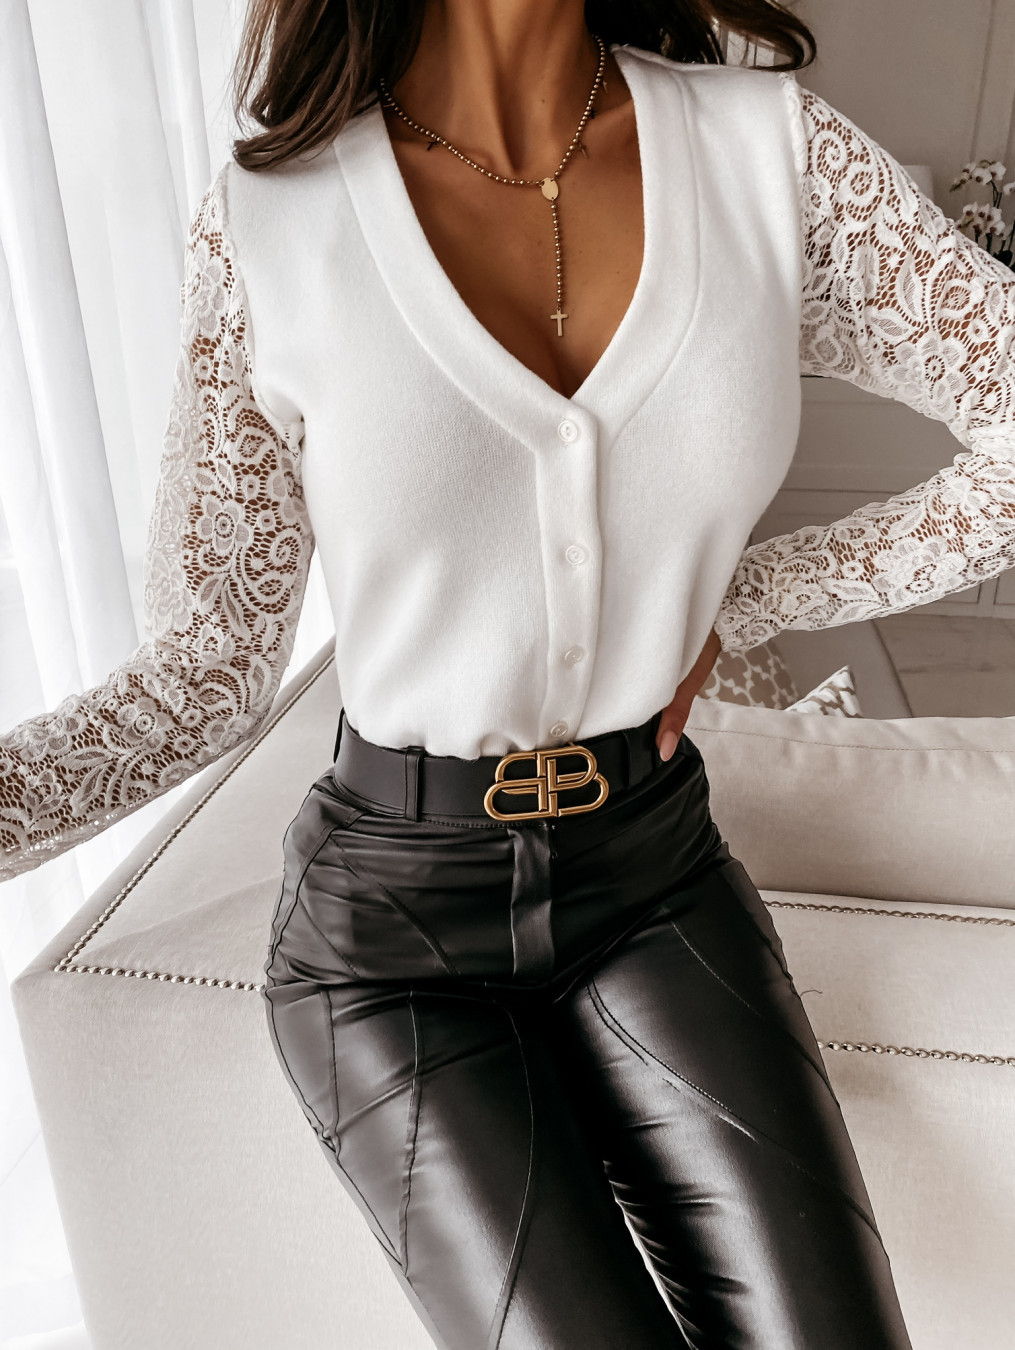 V-neck lace-stitching long-sleeved buttons solid color top NSYD6954